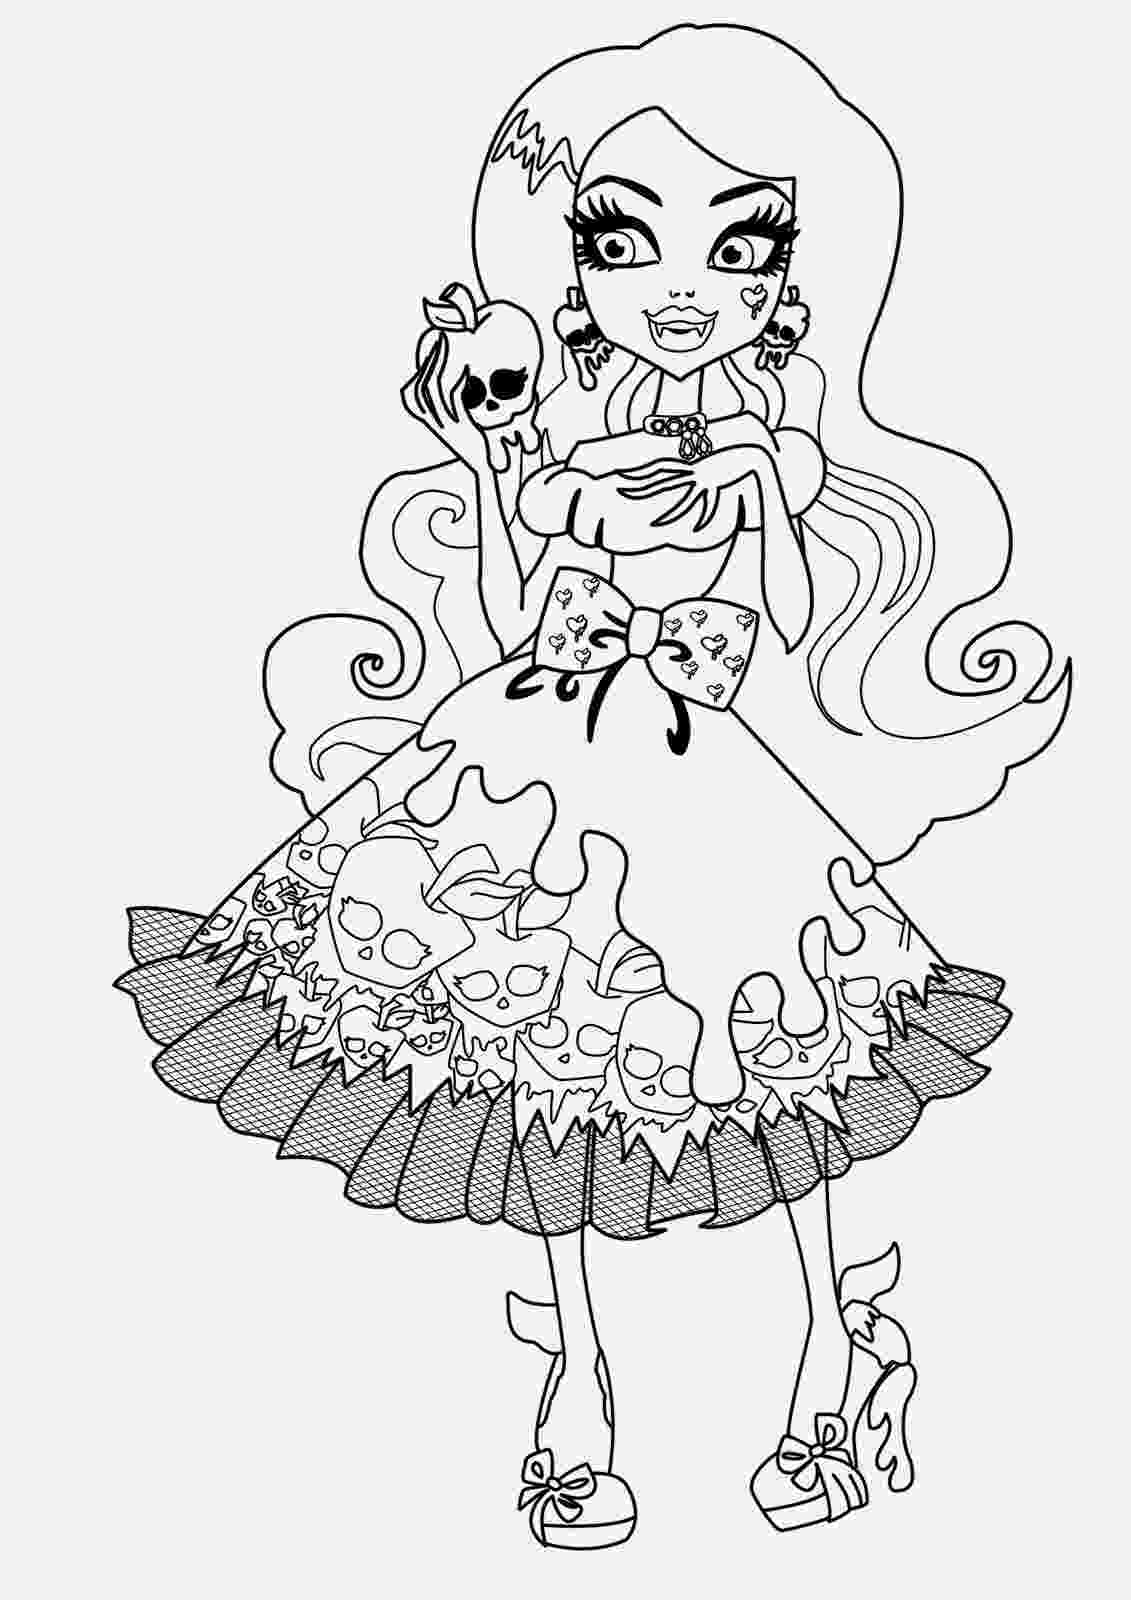 free colouring pages monster high monster high coloring pages free coloring pages pages free monster high colouring